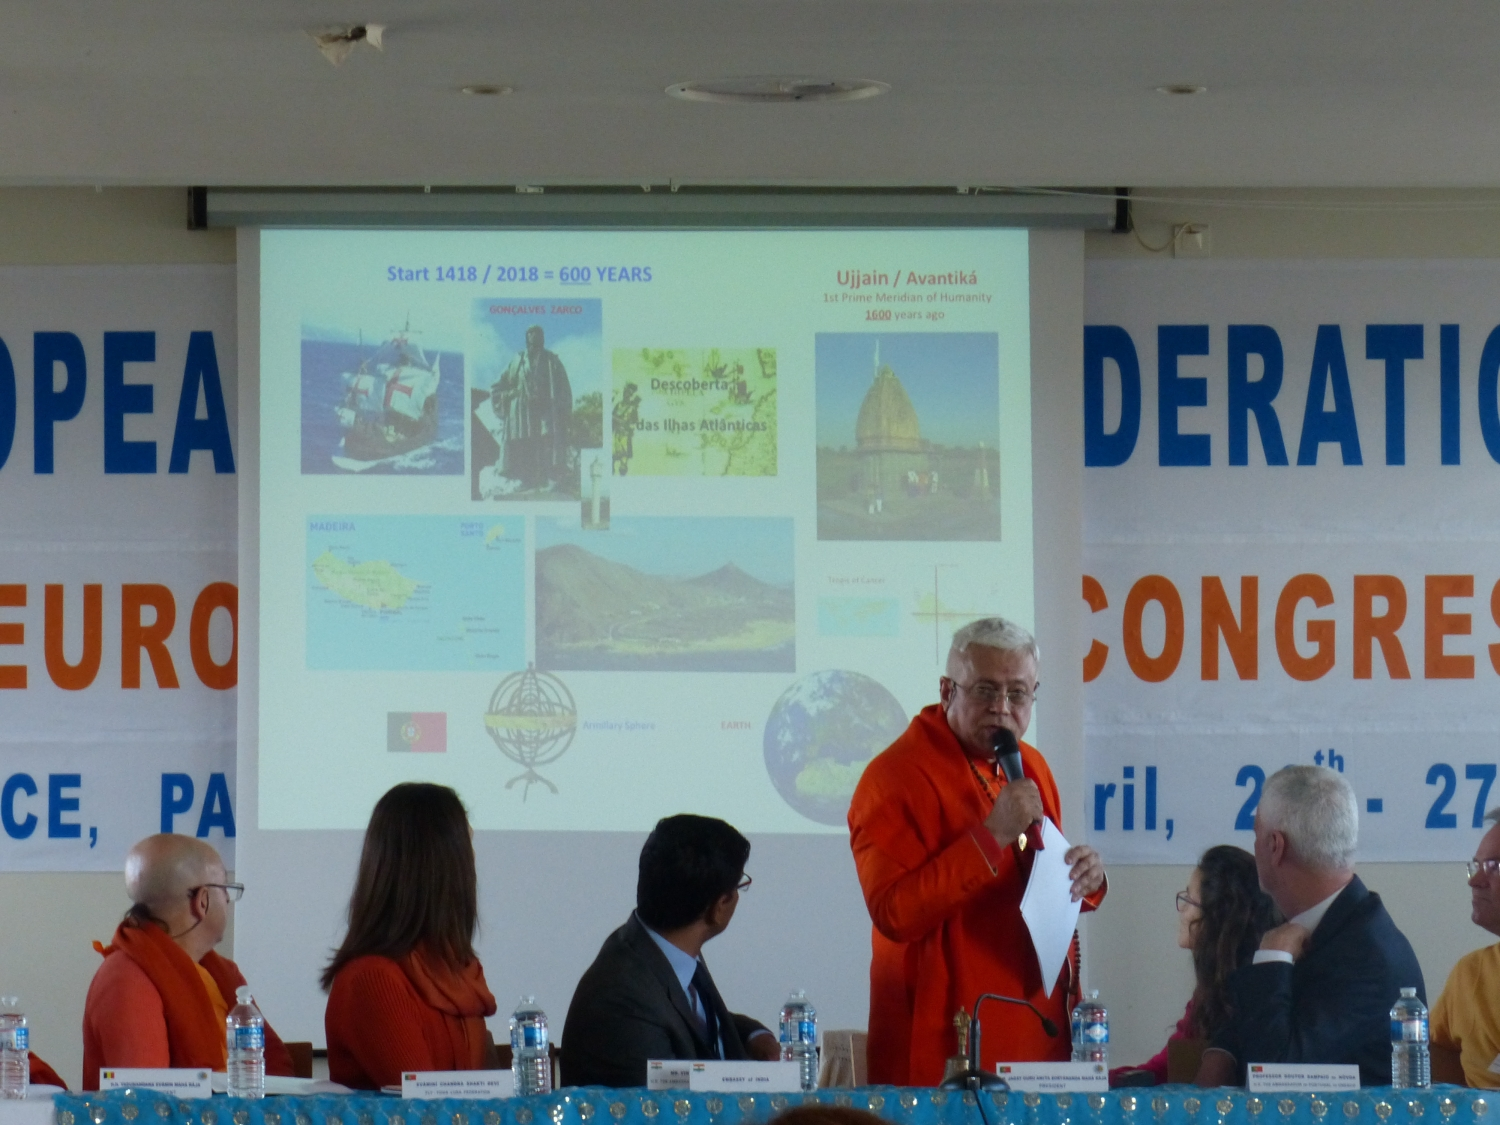 Openning Communication by HH Jagat Guru Amrta Súryánanda Mahá Rája : 'Total Yoga, Cosmogenic Sámkhya, Purpose and Greatness'